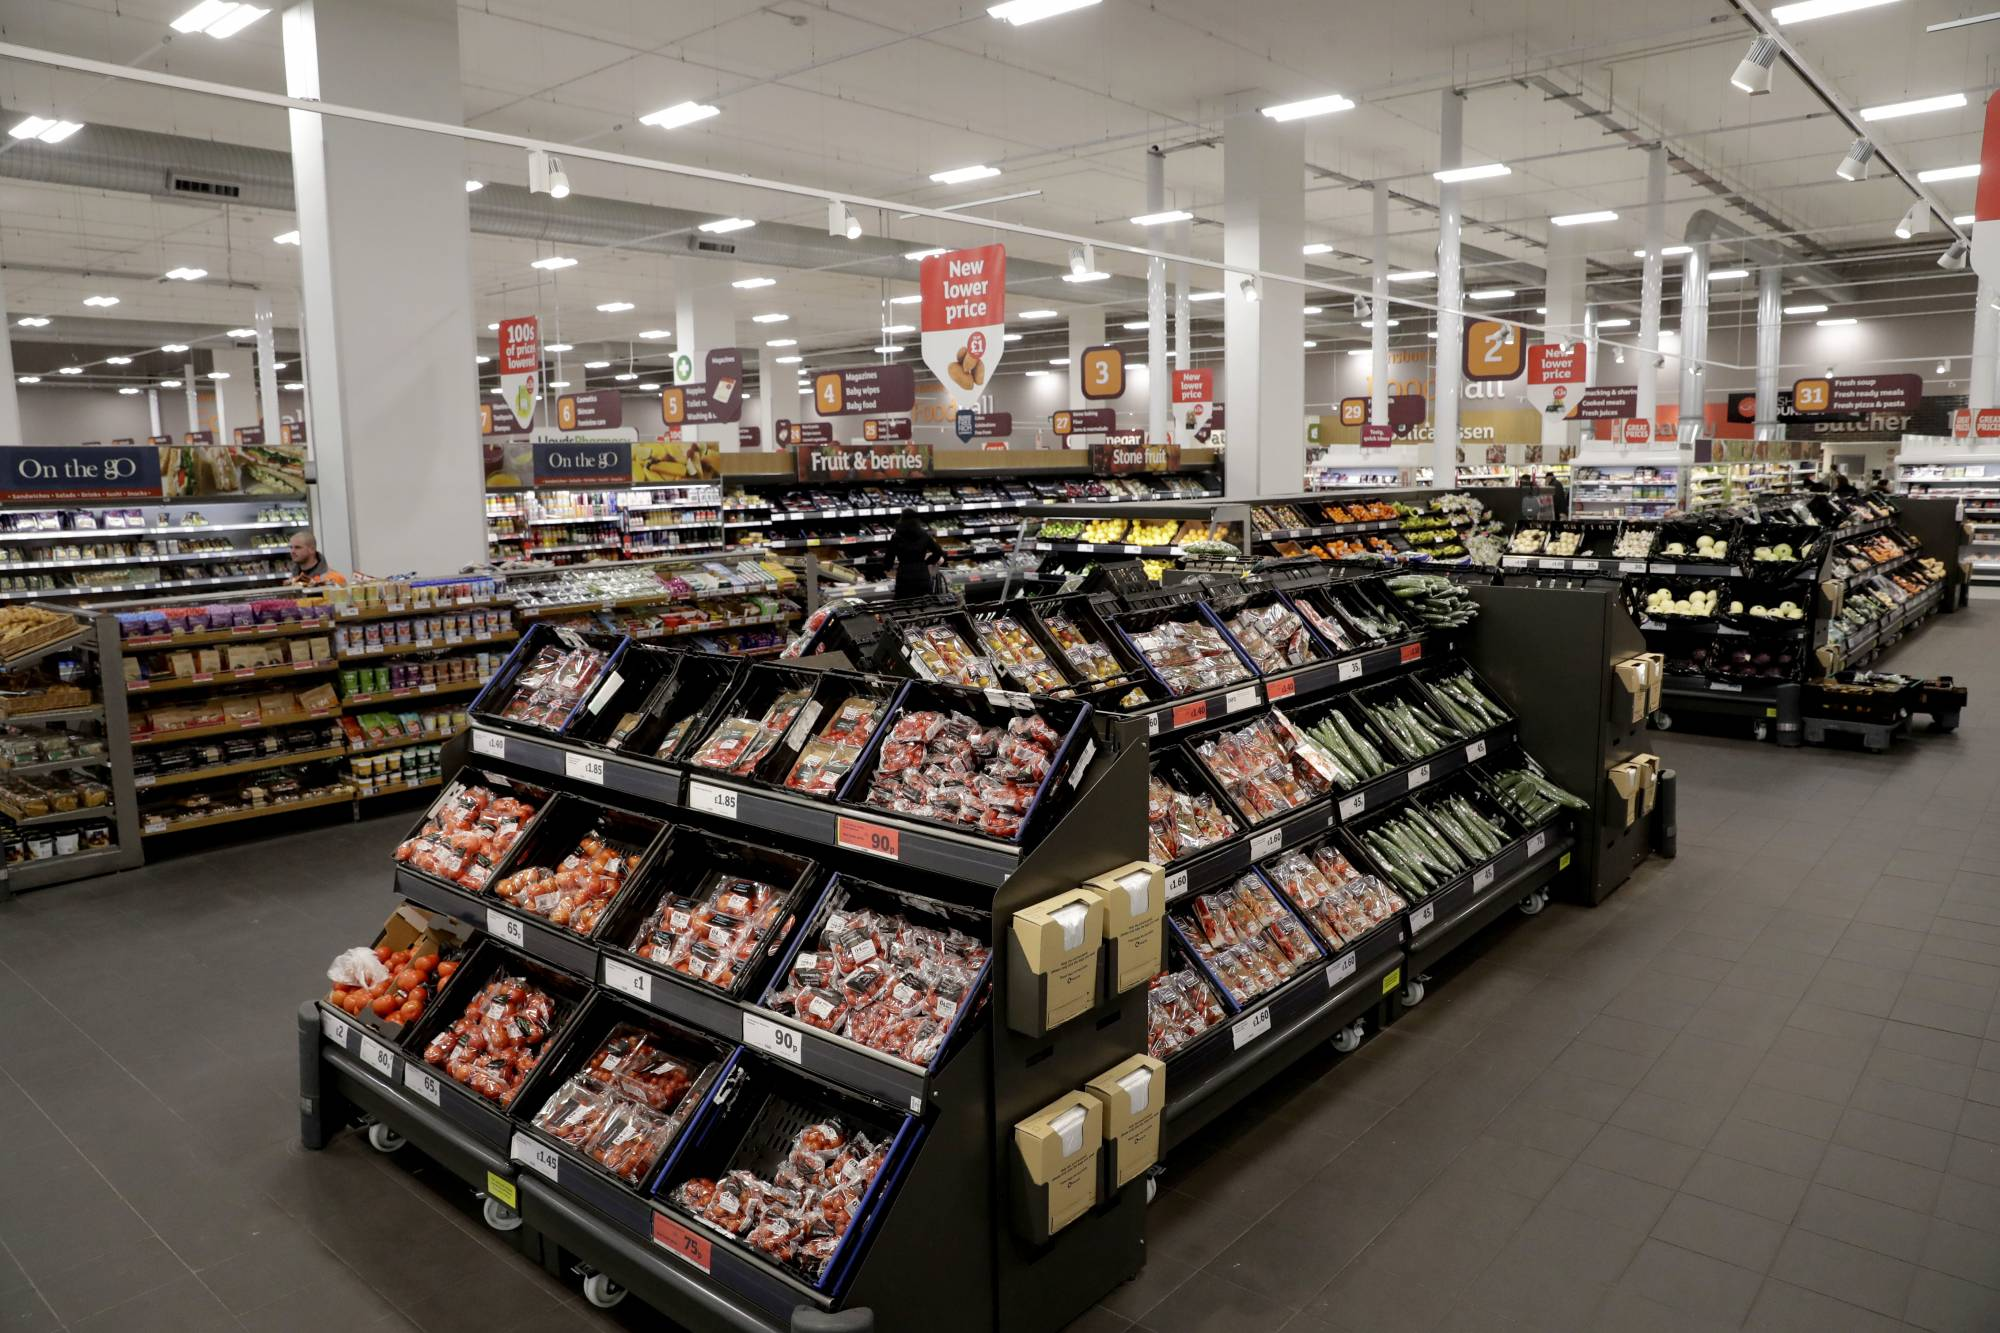 FILE- This April 30, 2018, file photo shows an interior view of the Sainsbury's flagship store in the Nine Elms area of London. British regulators say the proposed supermarkets merger between Sainsbury's and Walmart's Asda unit would push up prices and reduce quality for shoppers, casting doubt on a deal that would create the country's biggest grocery chain. (AP Photo/Matt Dunham, File)